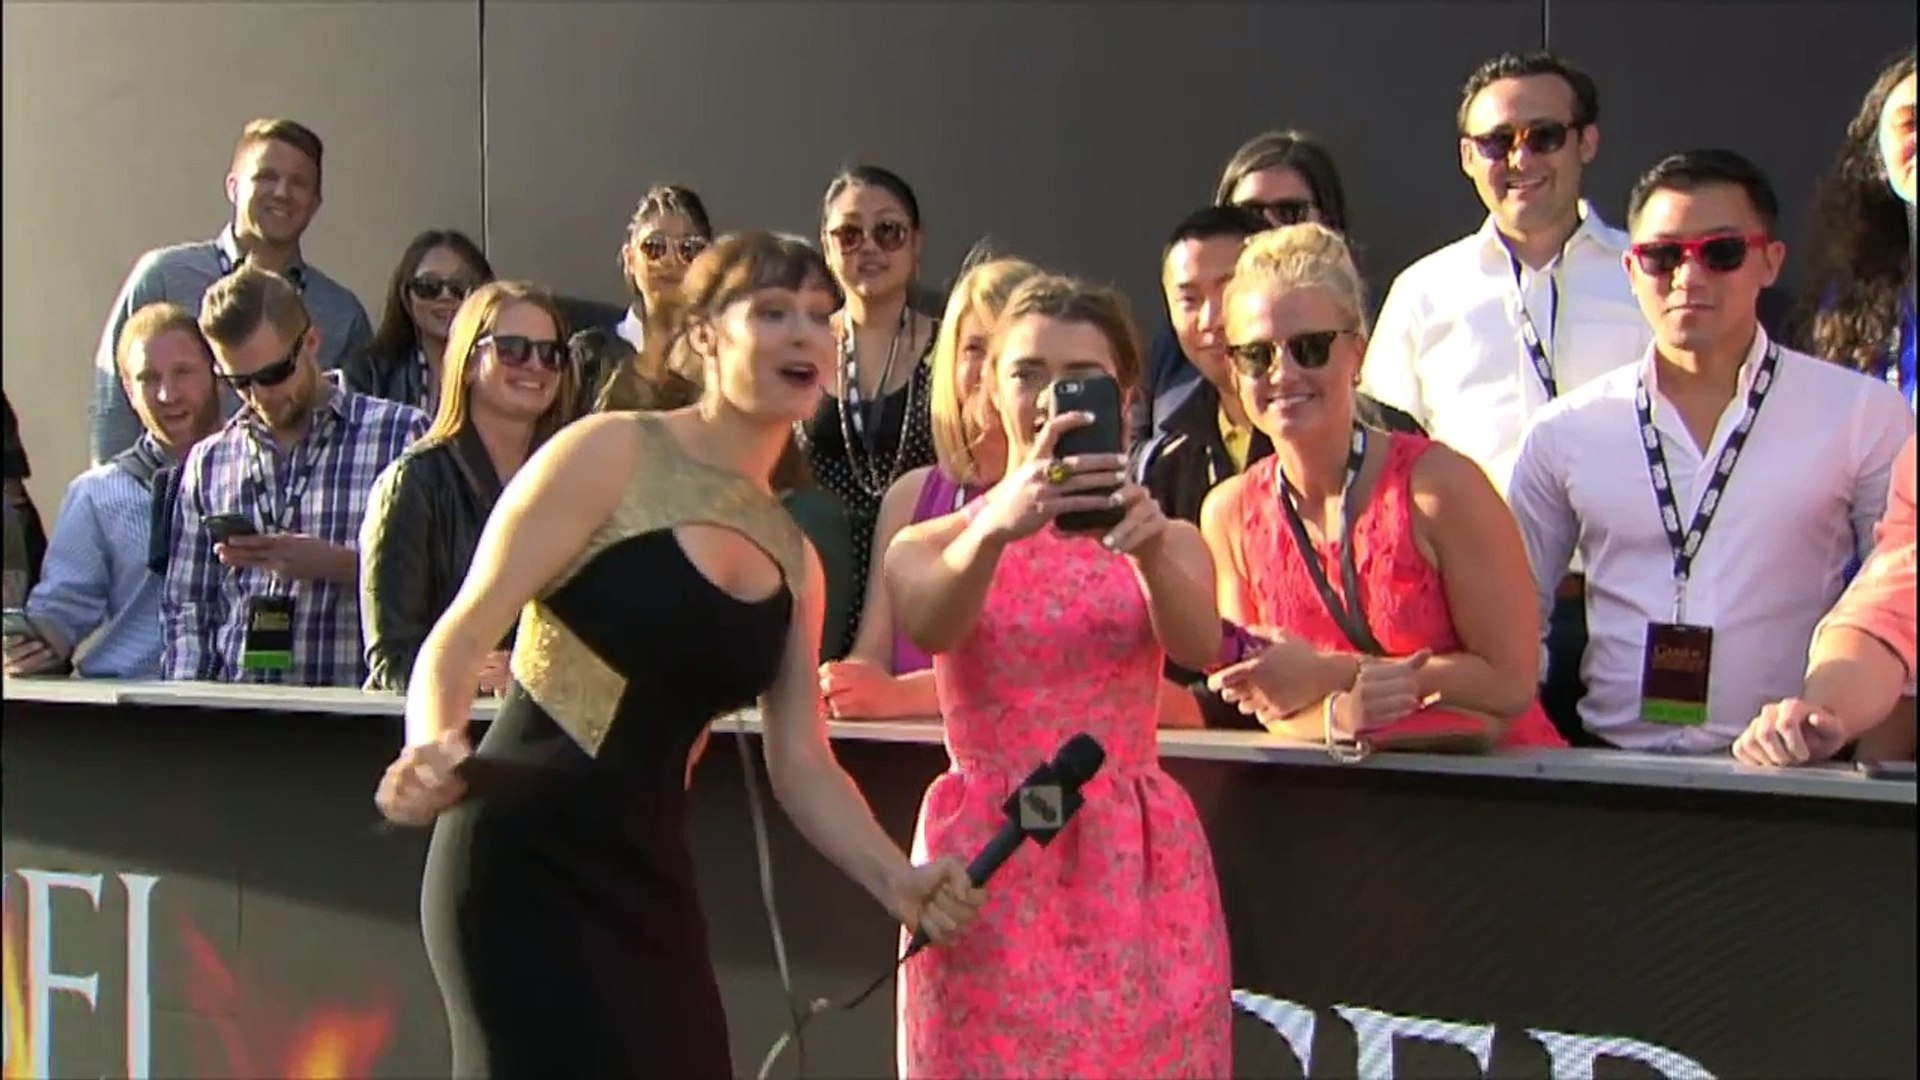 Game Of Thrones - Season 6 Premiere Red Carpet Cast Interviews at Los Angeles 04/10/2016